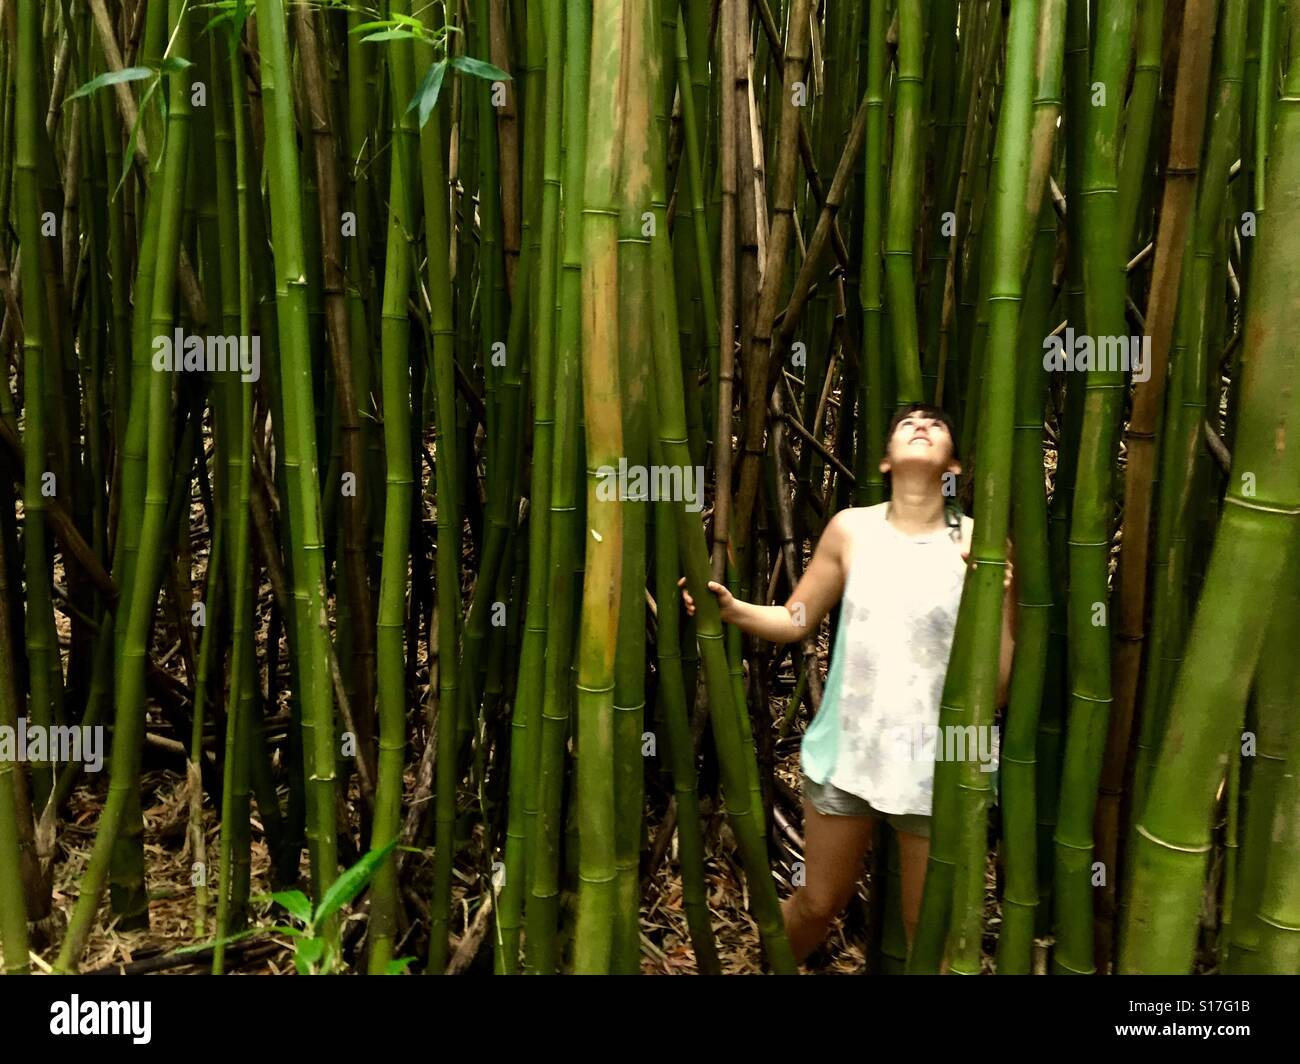 Wander in the bamboo forest Stock Photo